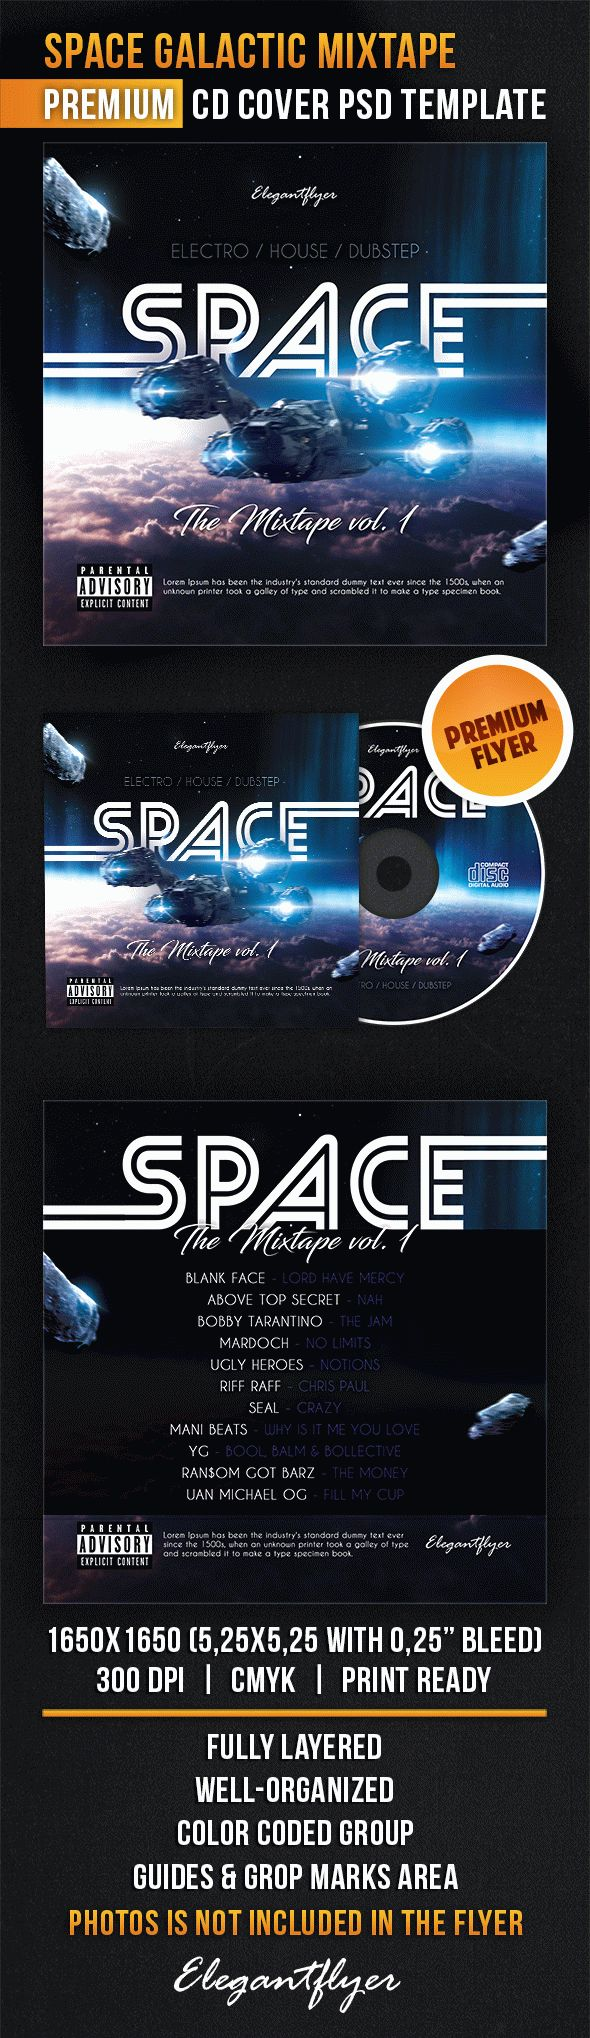 Space Galactic Mixtape – CD Cover PSD Template